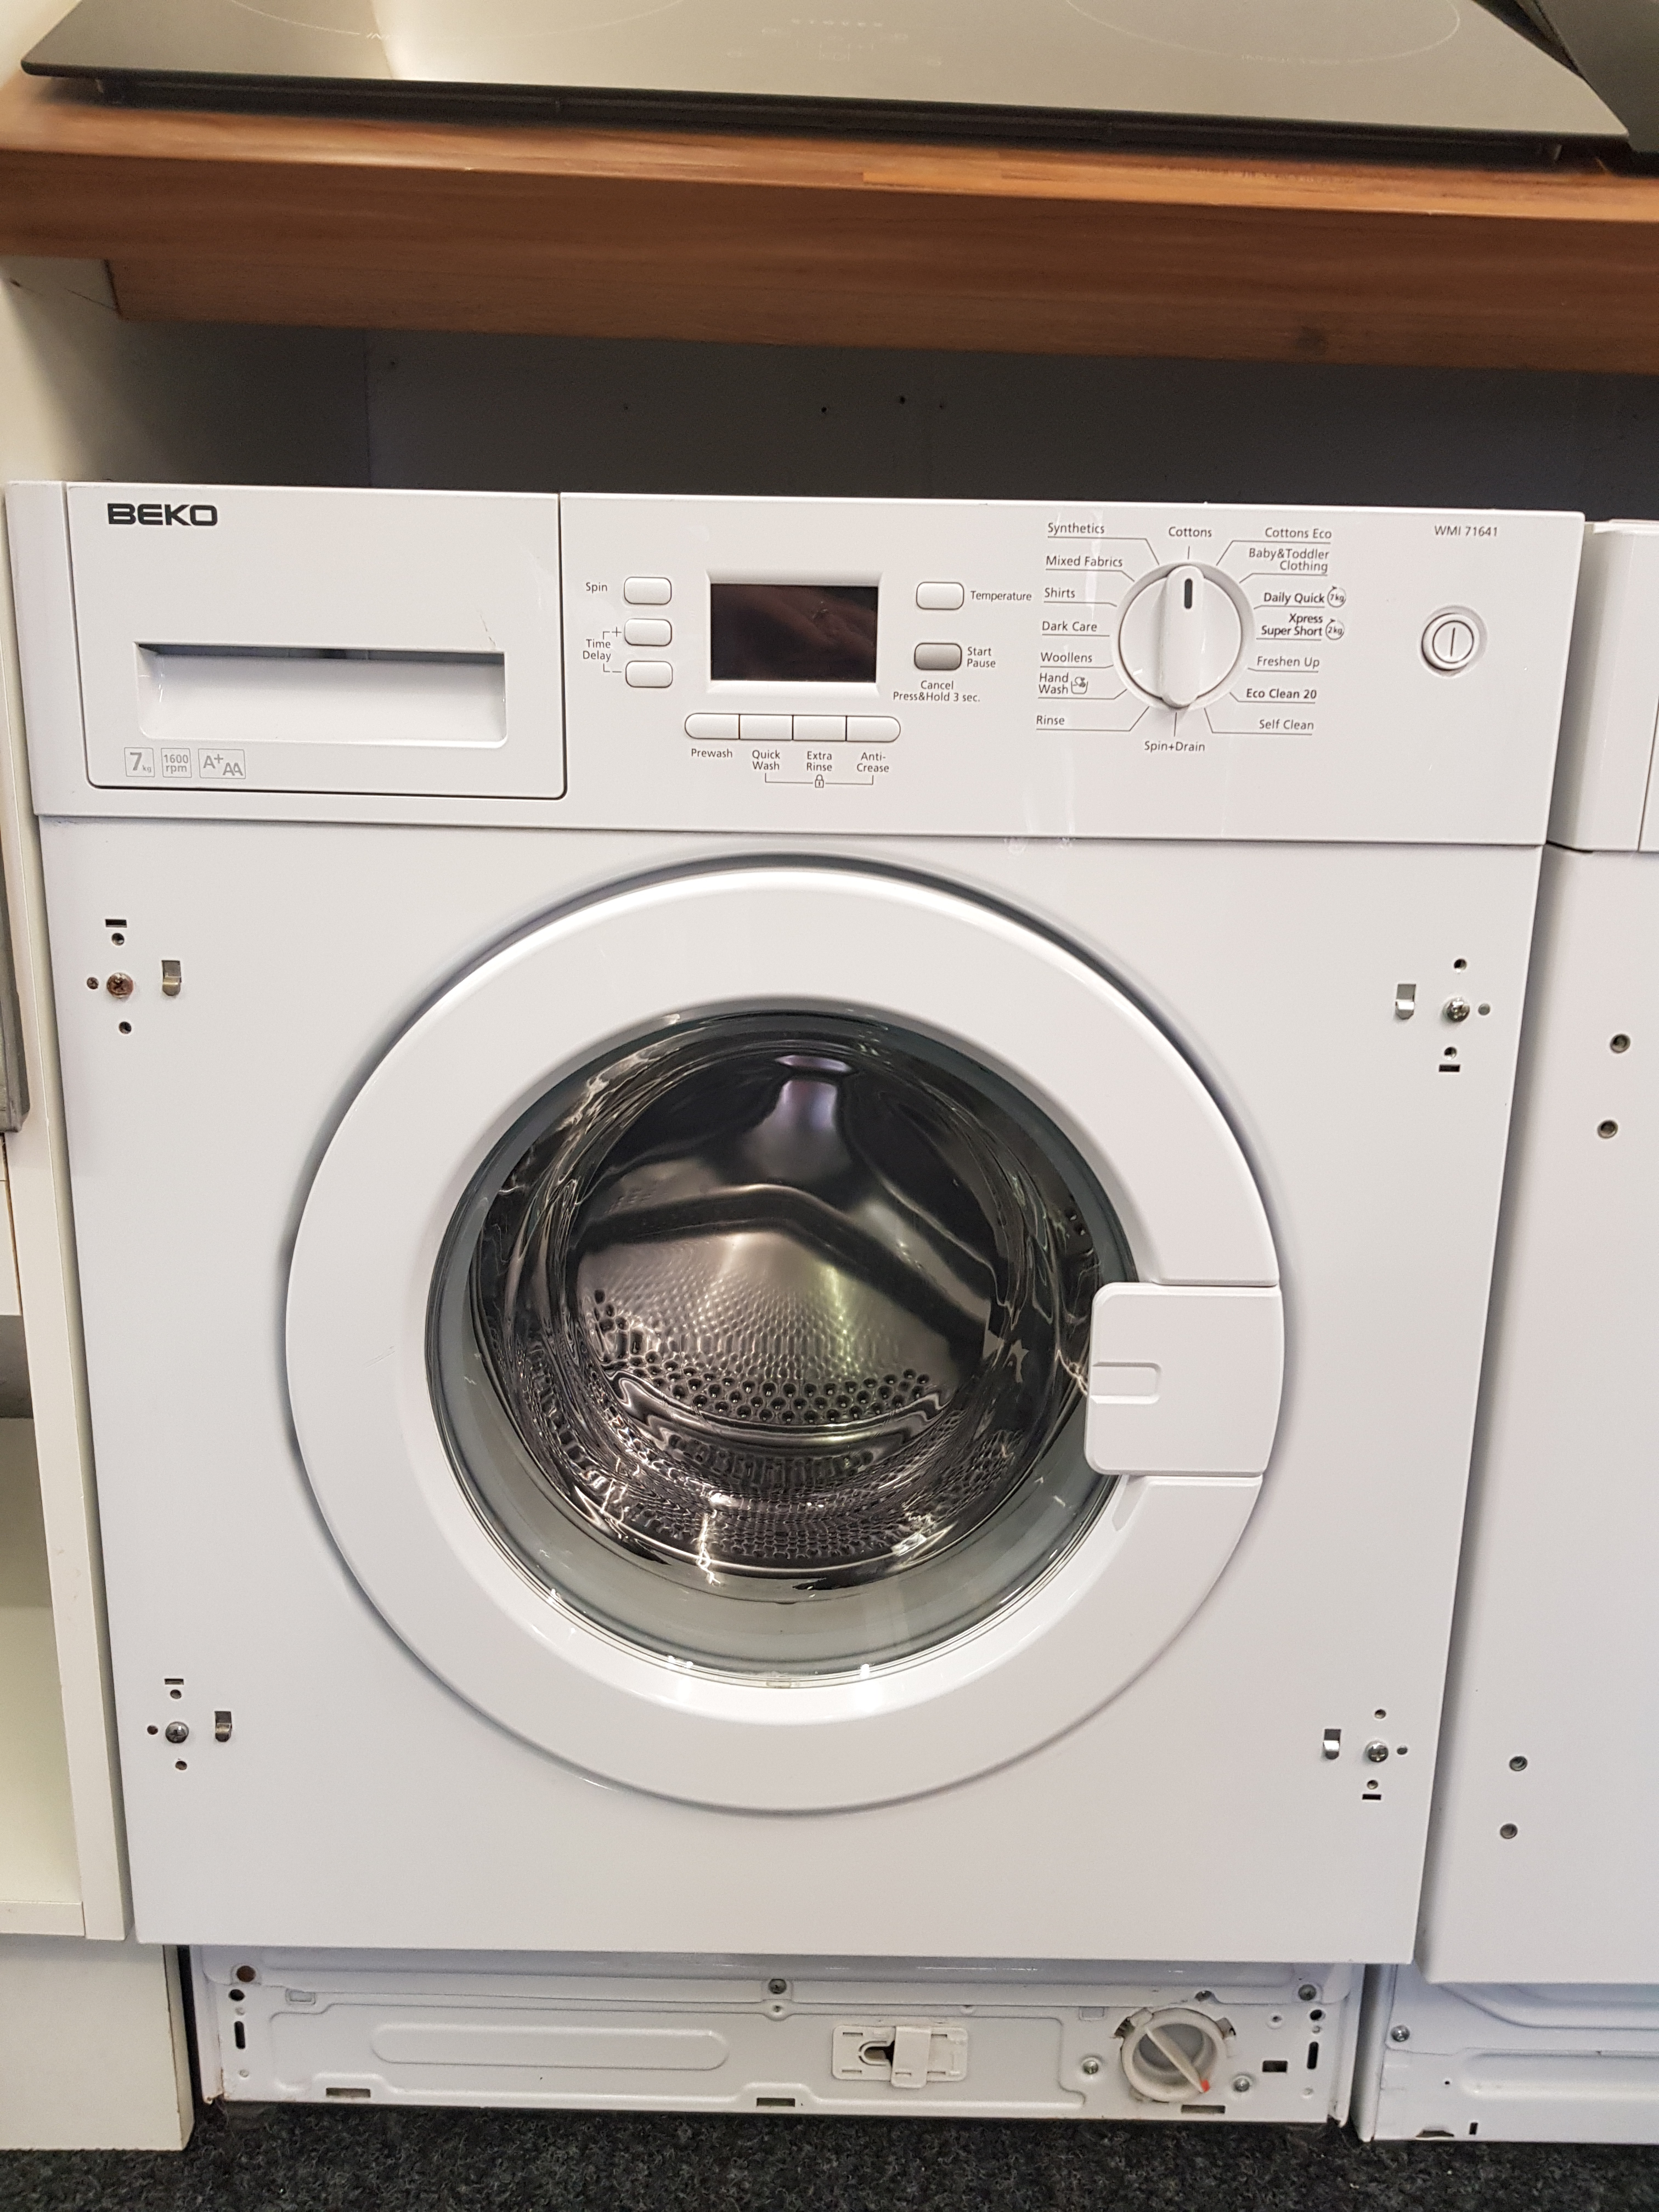 Details about Beko Integrated 7kg 1400 Spin Washing Machine Model: WMI71641